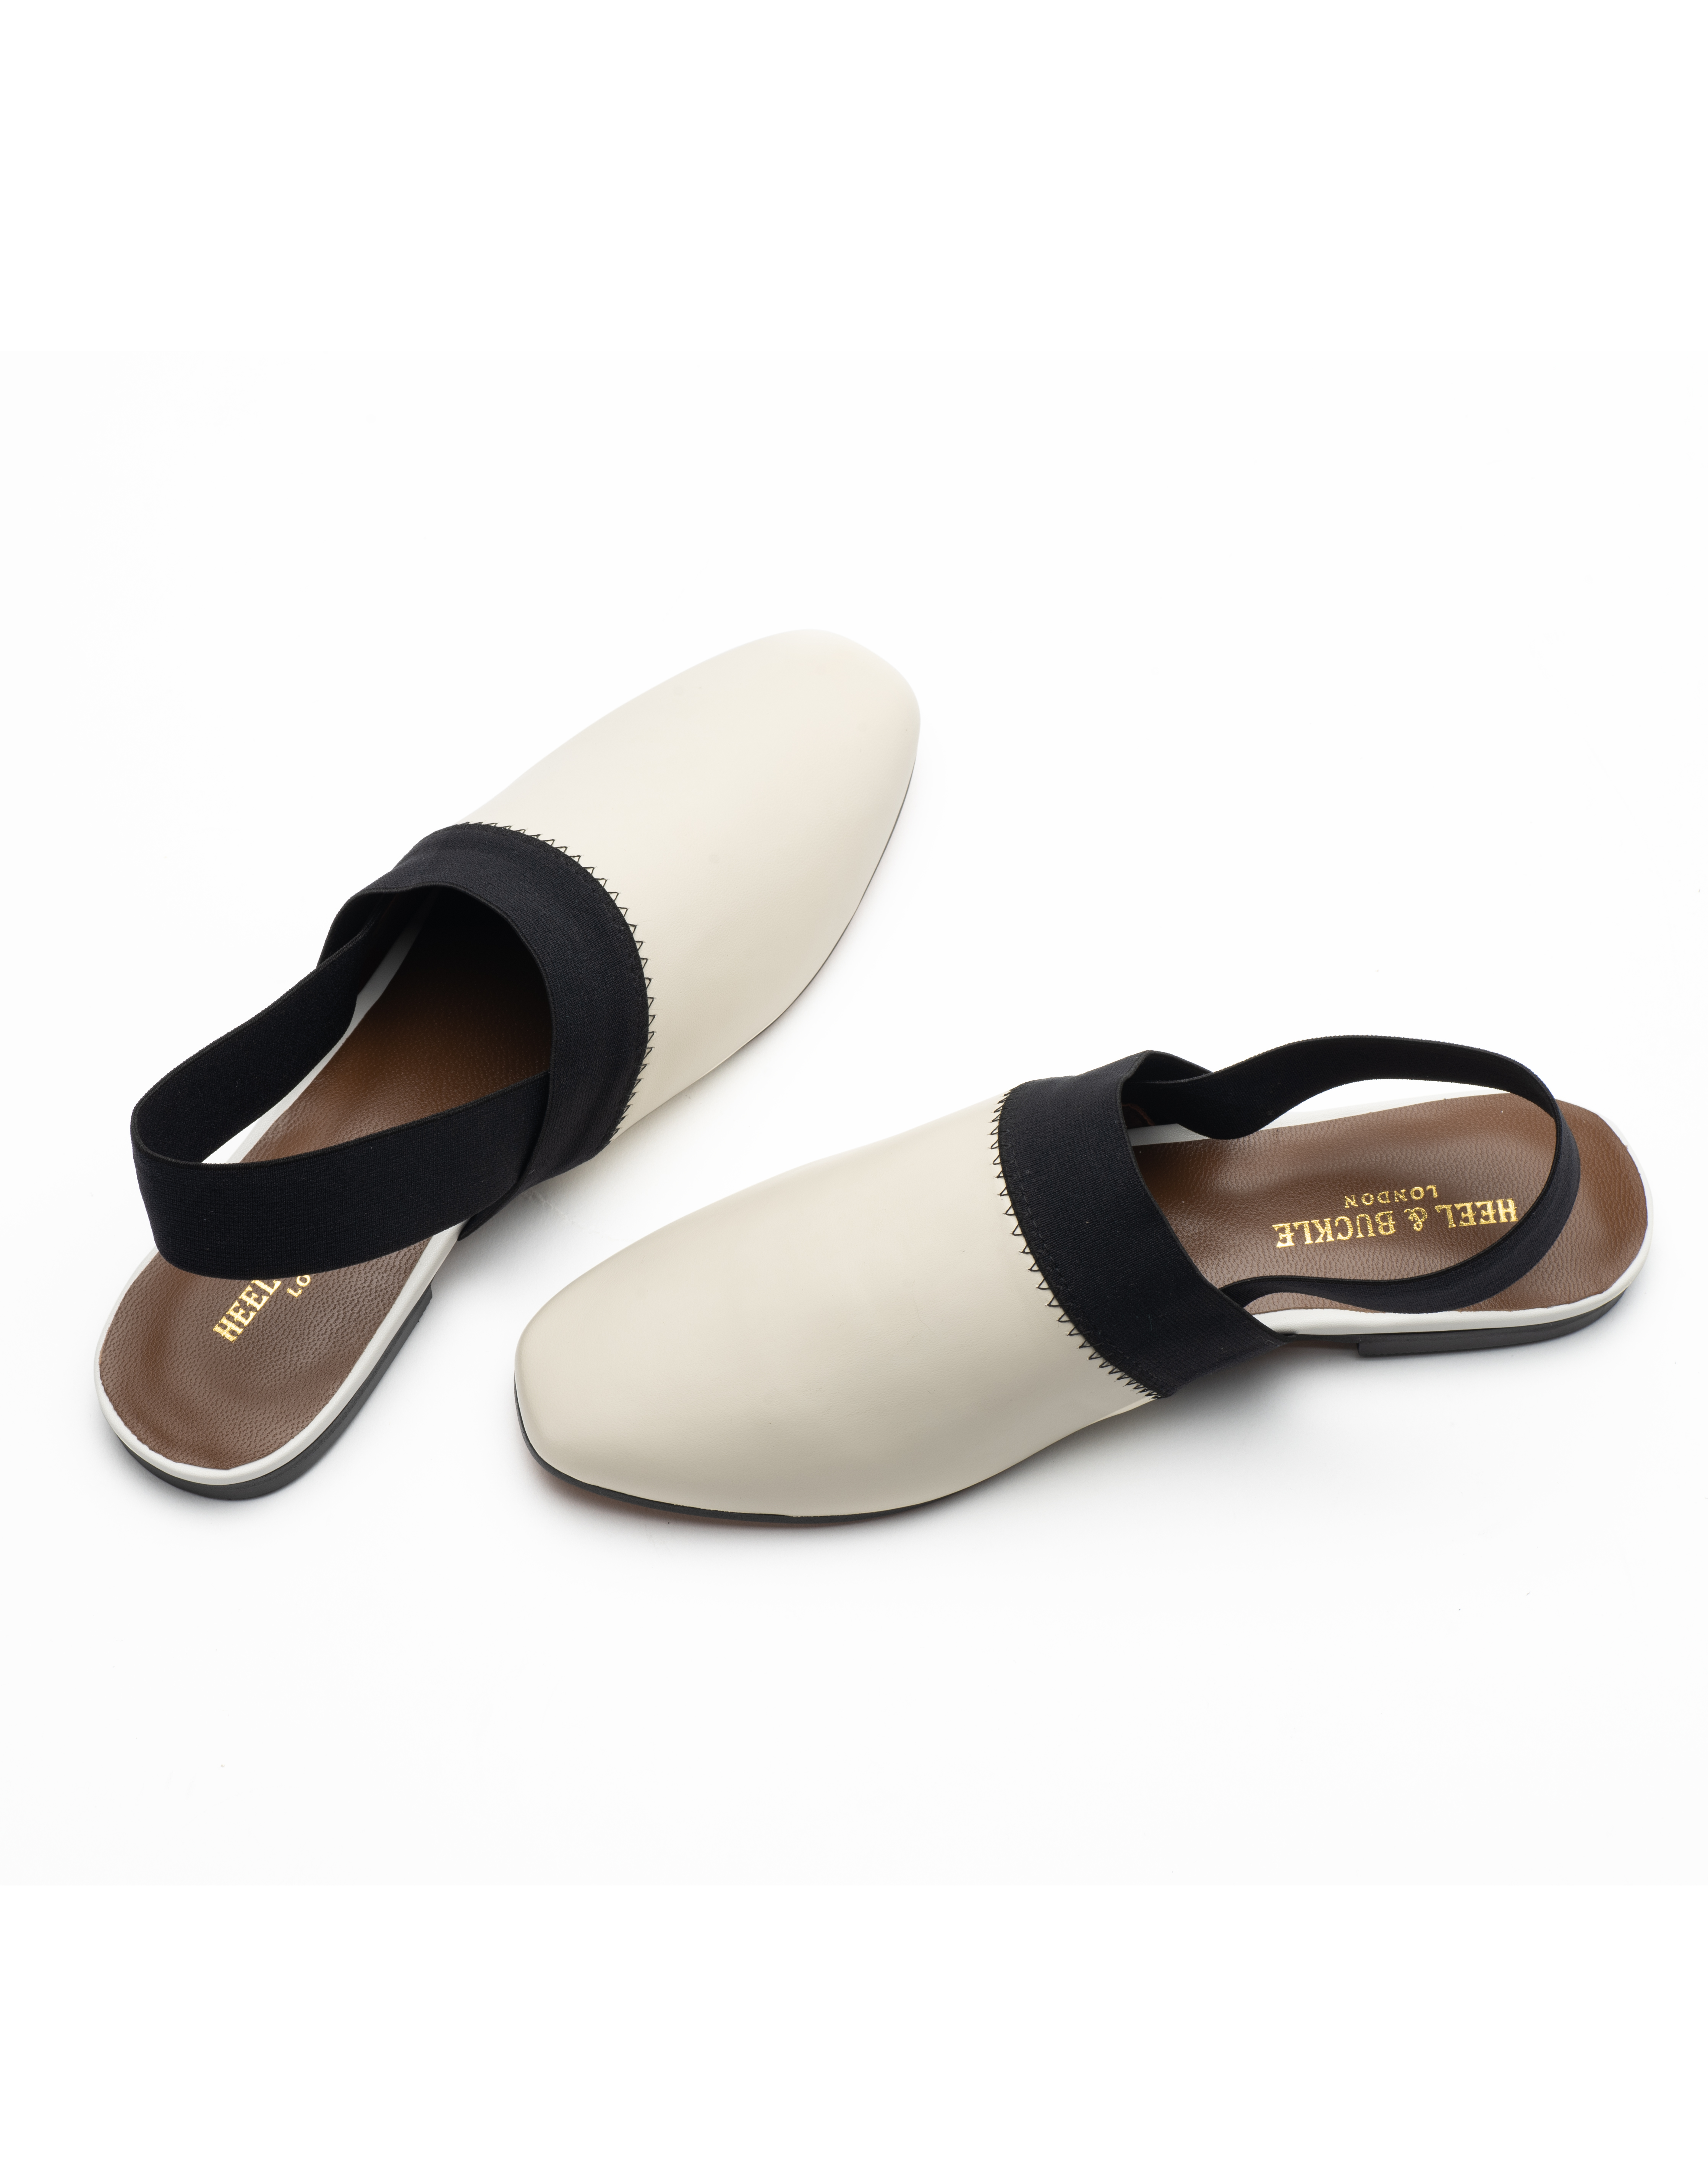 Heel _ Buckle London-Shoes-R178-1-Closed flats-White-4